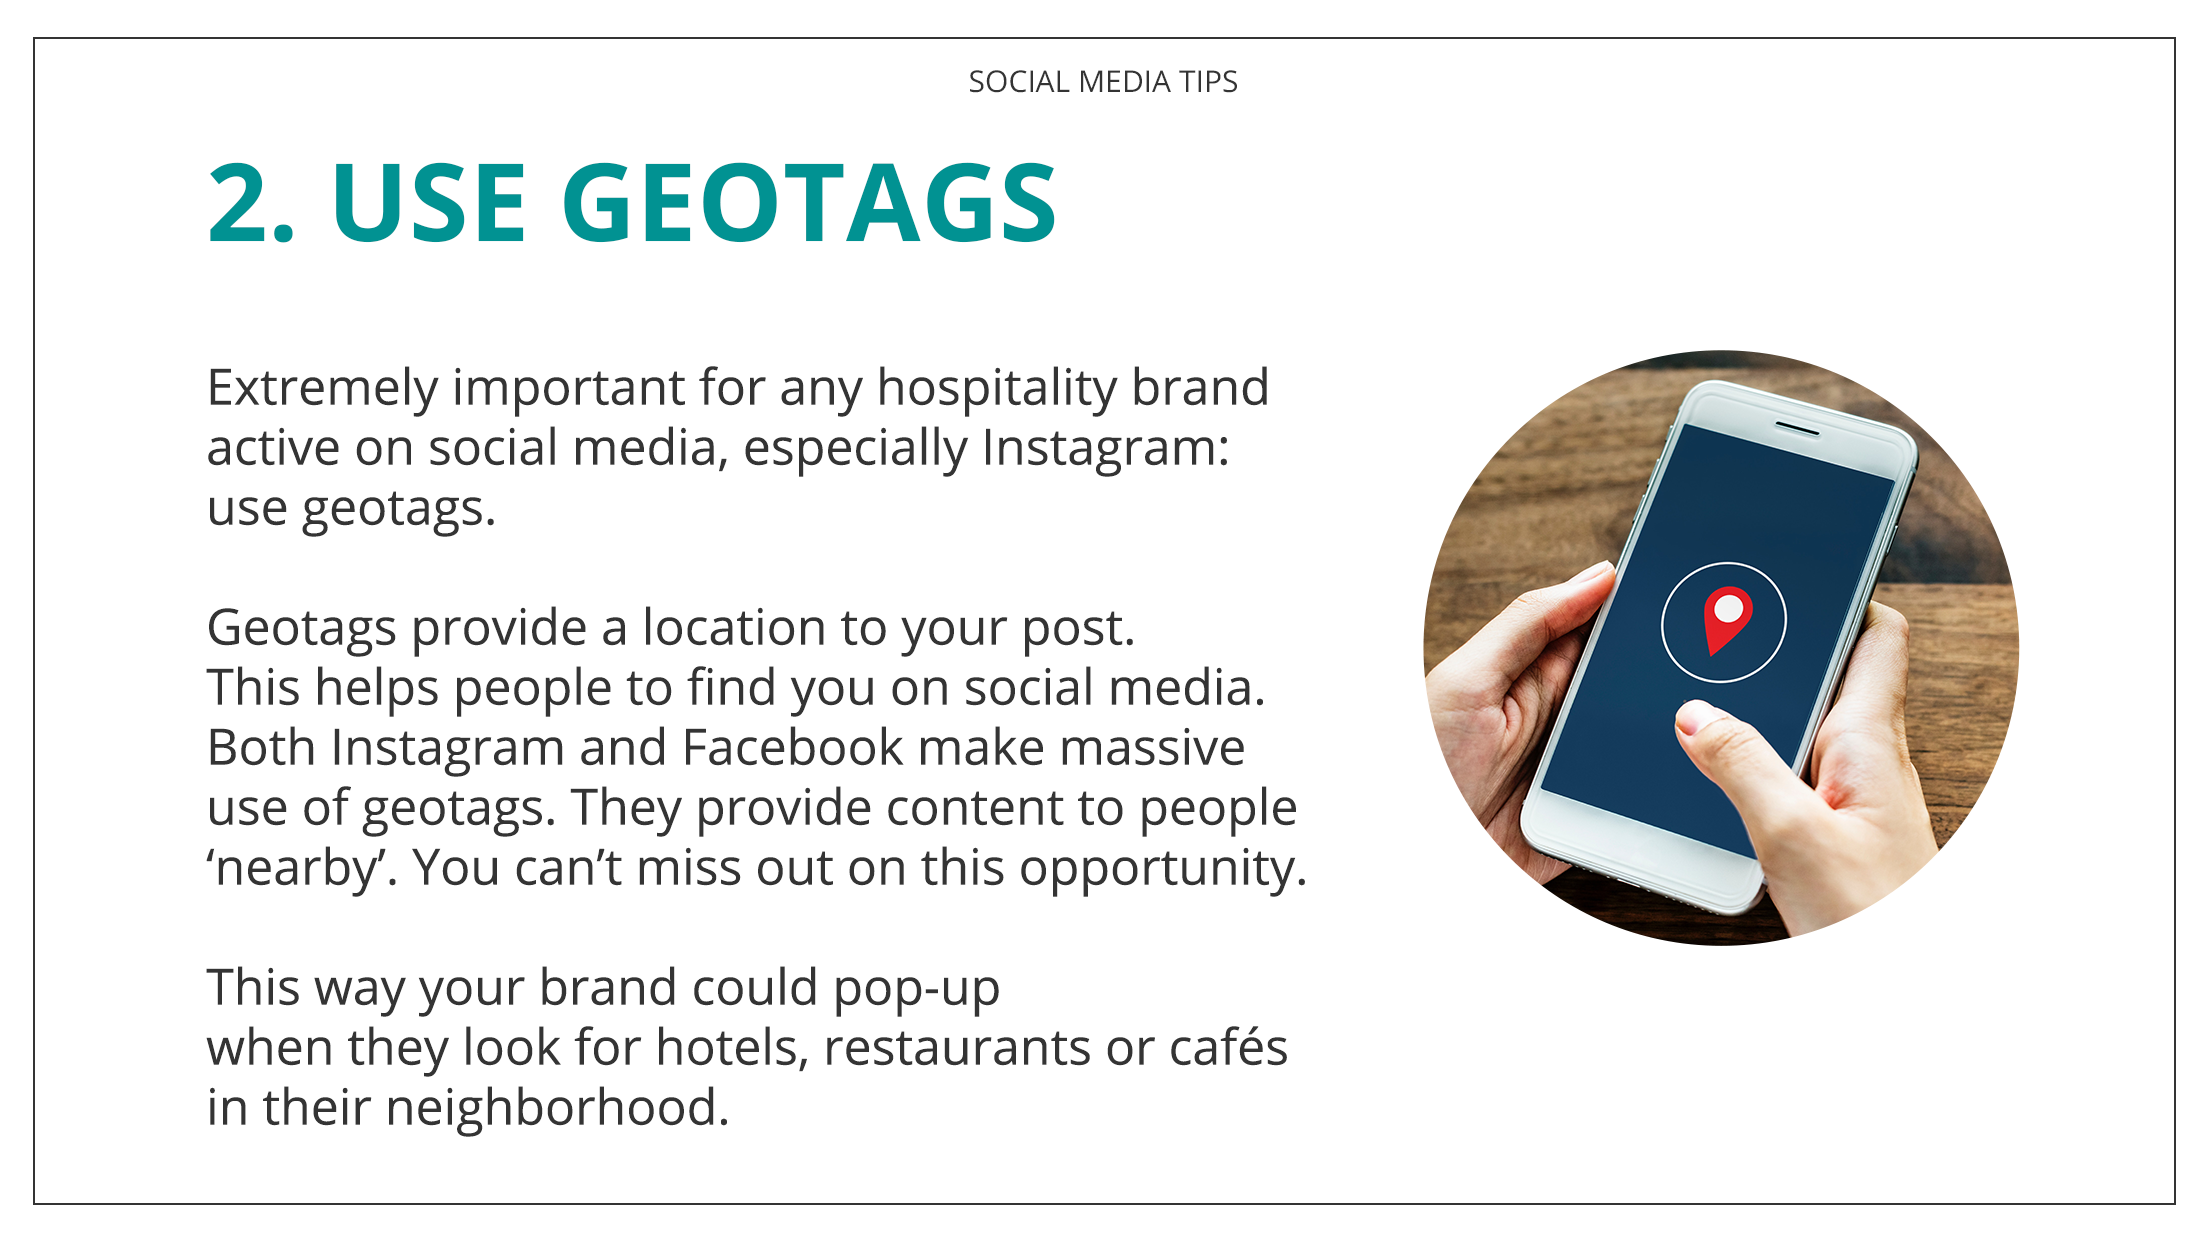 Extremely important for any hospitality brand active on social media, especially Instagram: use geotags. Geotags provide a location to your post. This helps people to find you on social media. Both Instagram and Facebook make massive use of geotags. They provide content to people 'nearby'. You can't miss out on this opportunity. This way your brand could pop-up when they look for hotels, restaurants or cafés in their neighborhood. Your fans will slowly get to know your brand. Don't frustrate or confuse them by switching your color palette all the time or posting completely random images.